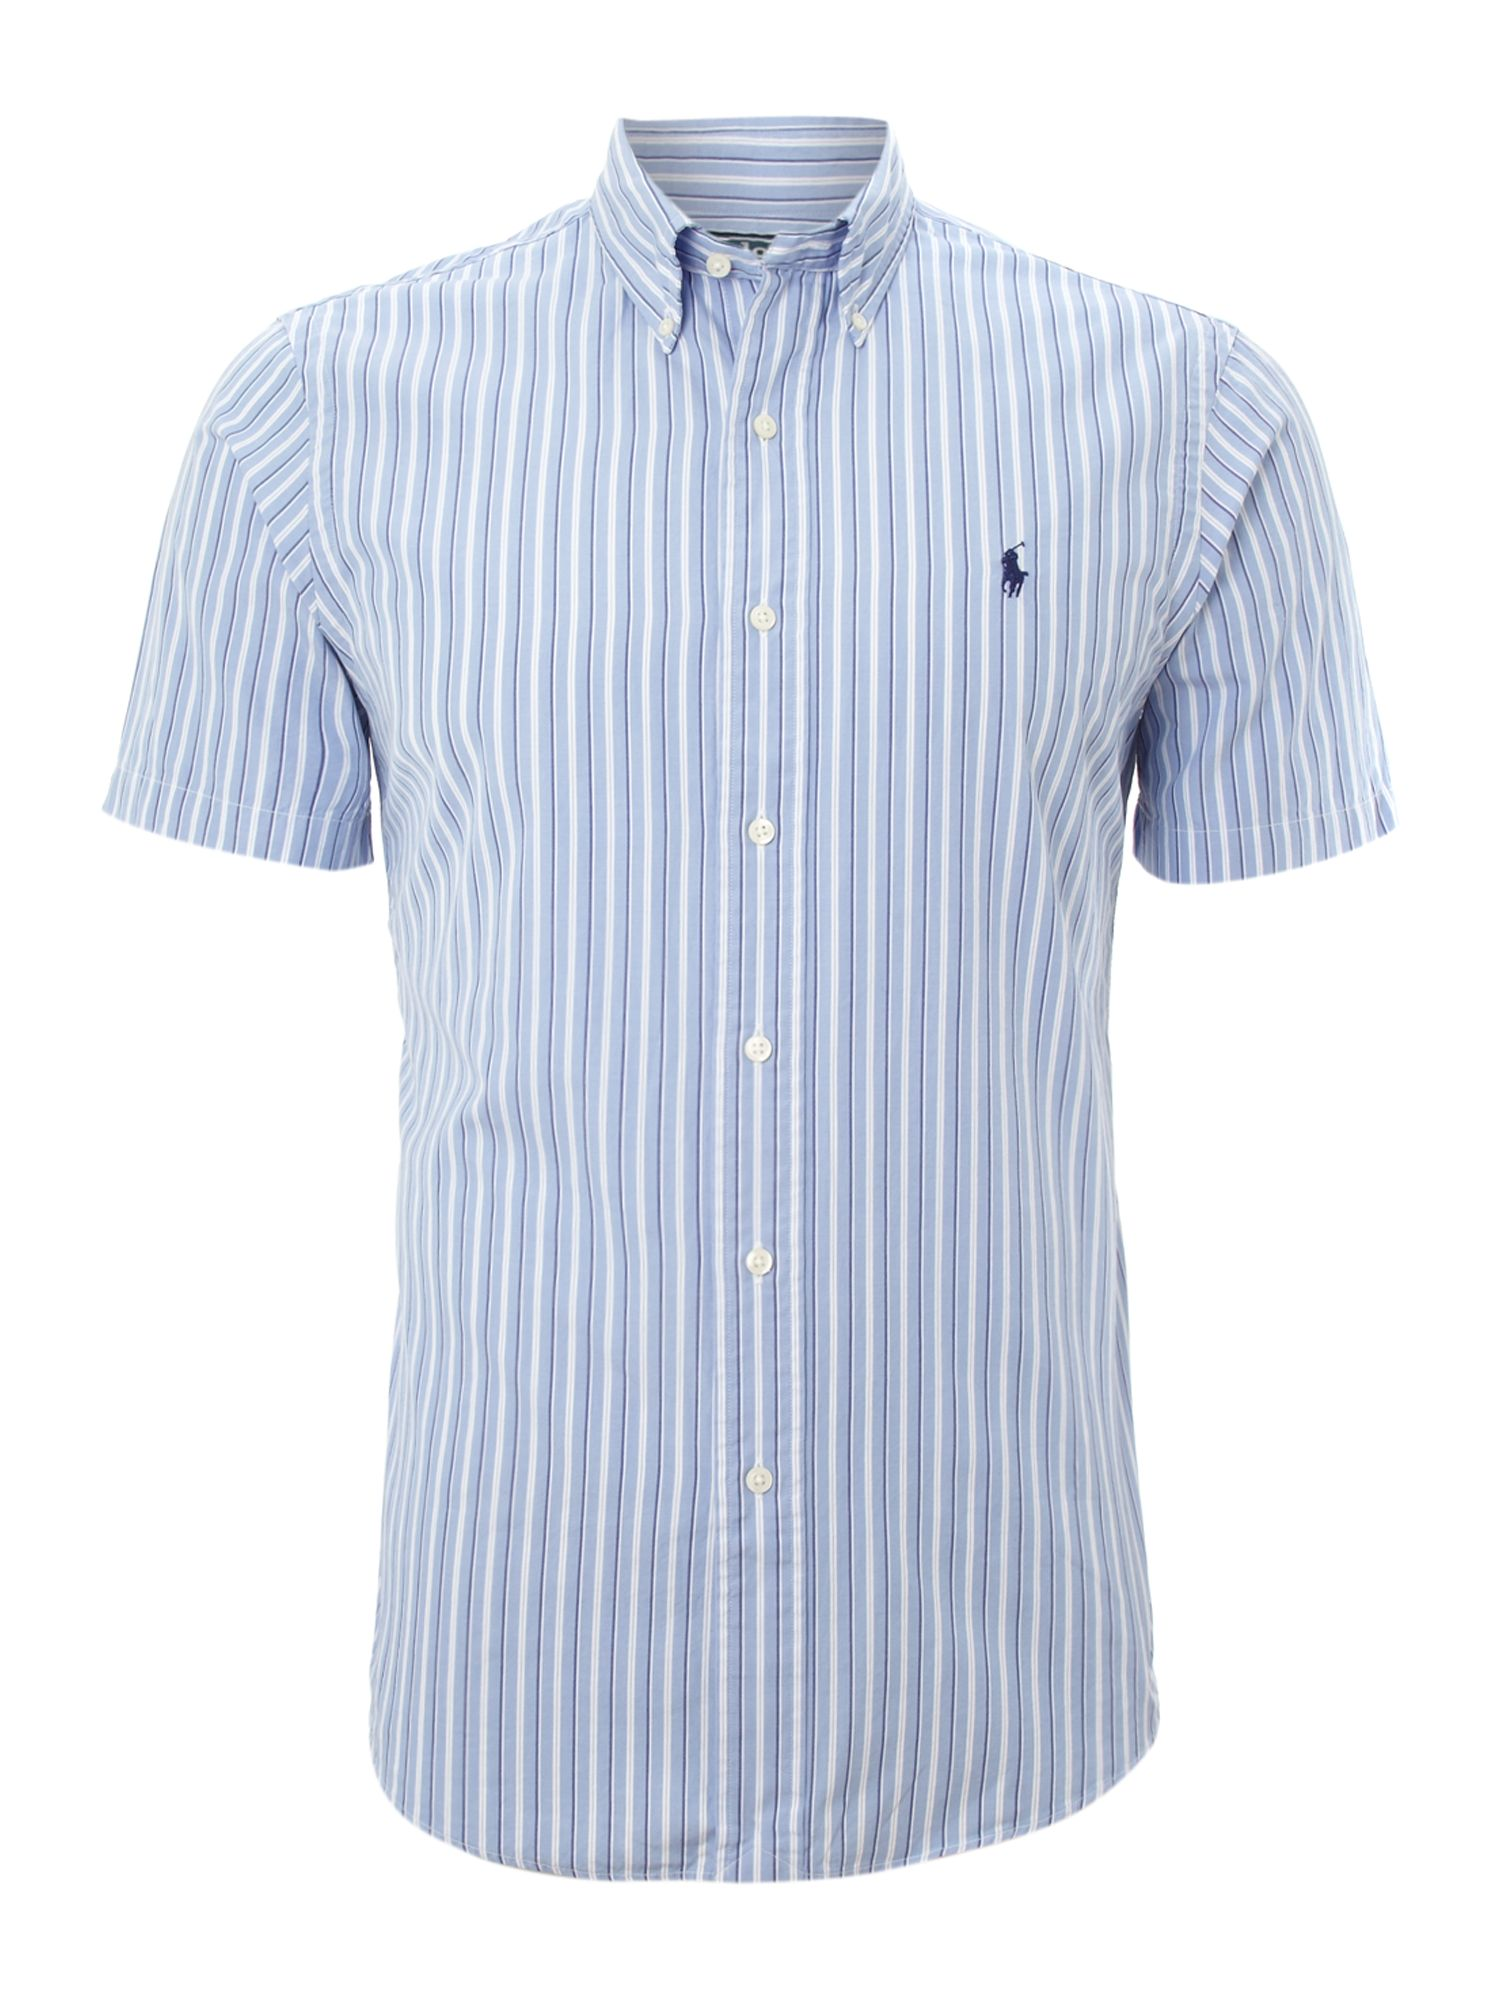 Polo ralph lauren short sleeved striped shirt in blue for for Mens short sleeve patterned shirts